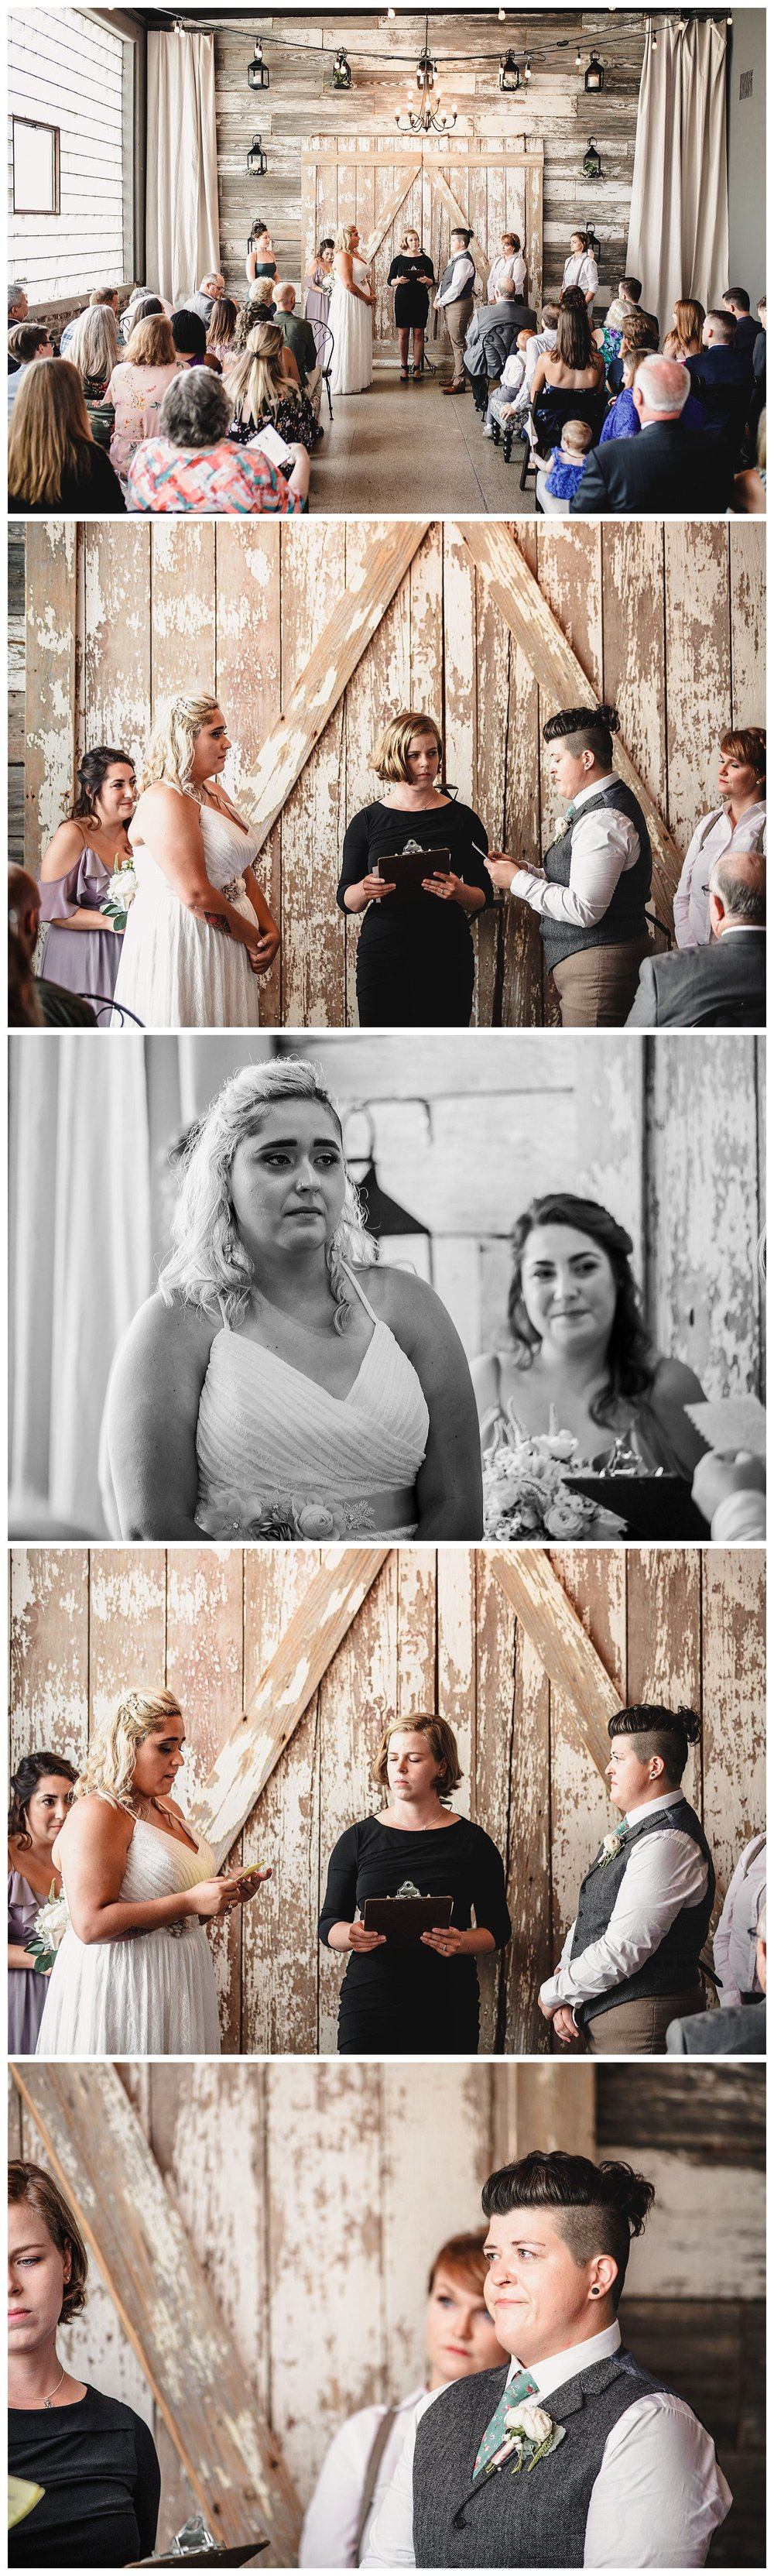 Kelsey_Diane_Photography_The_Vow_Exchange_Kansas_City_LGBT_Friendly_Wedding_Photographer_Kansas_City_Scout_Ica_0738.jpg